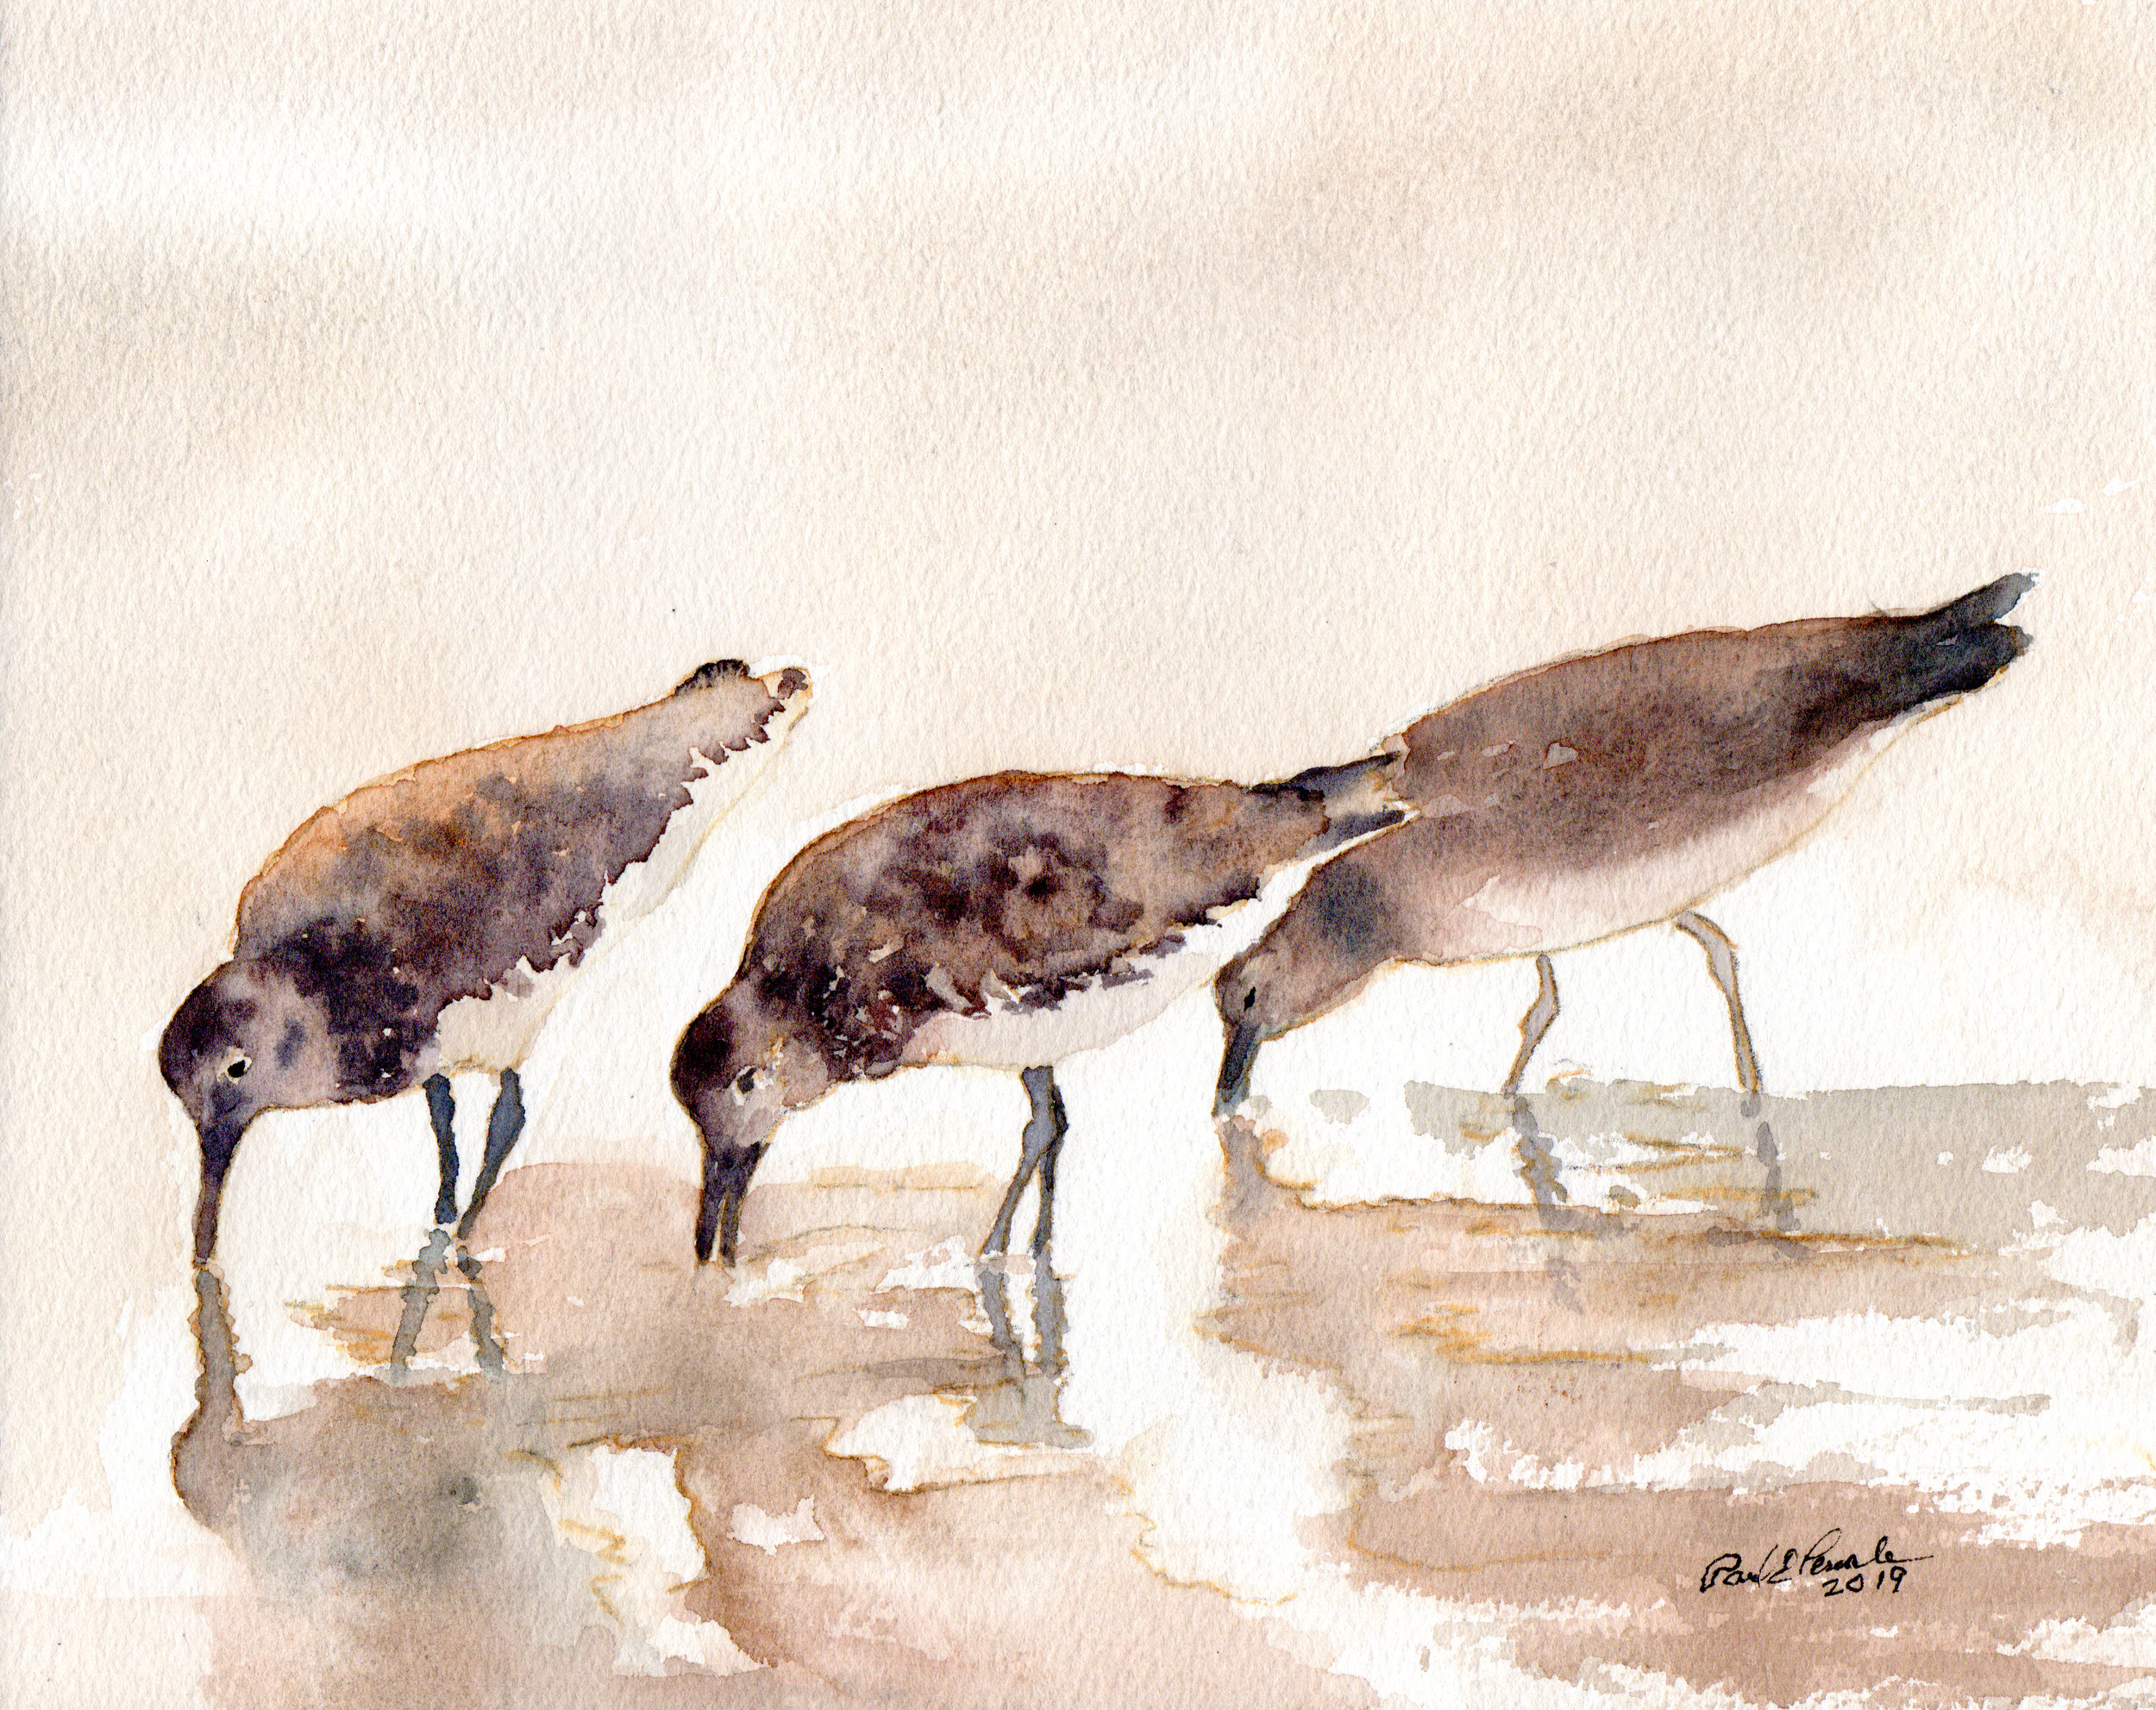 Bairds Sandpipers